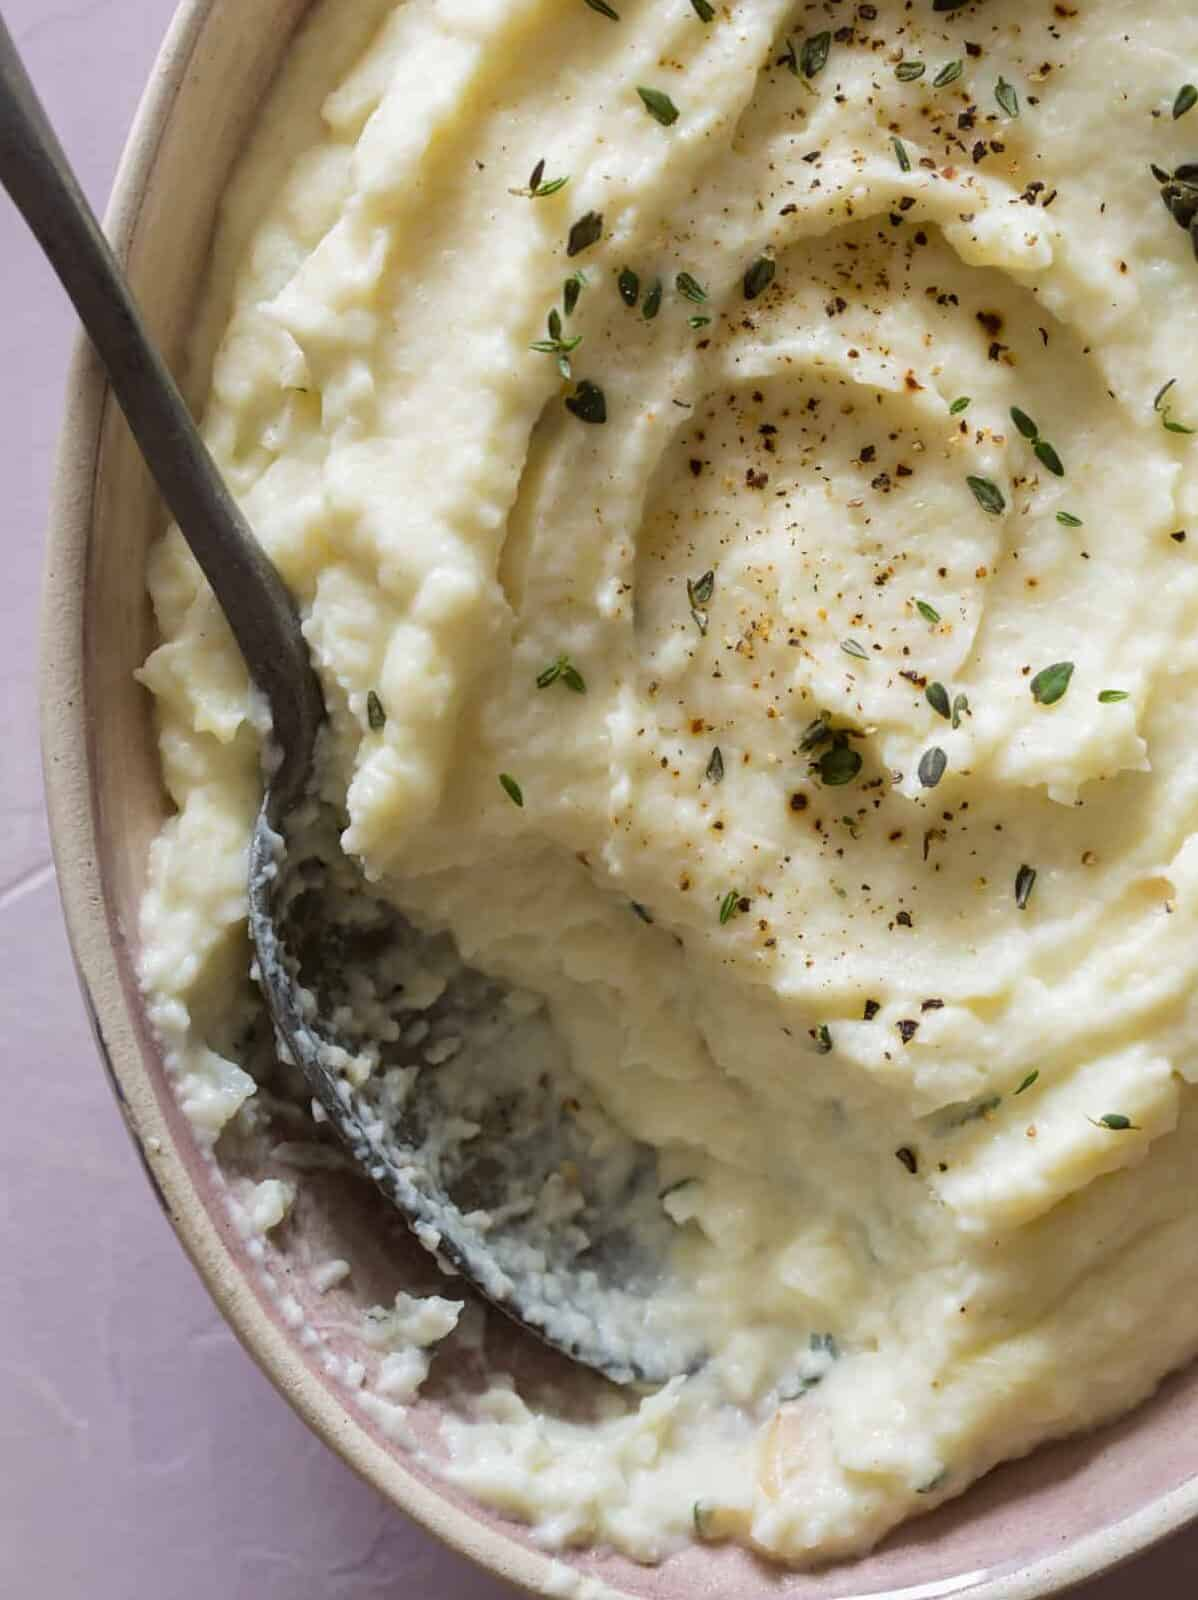 A close up of parsnip, cauliflower, and roasted garlic mash with a spoon.